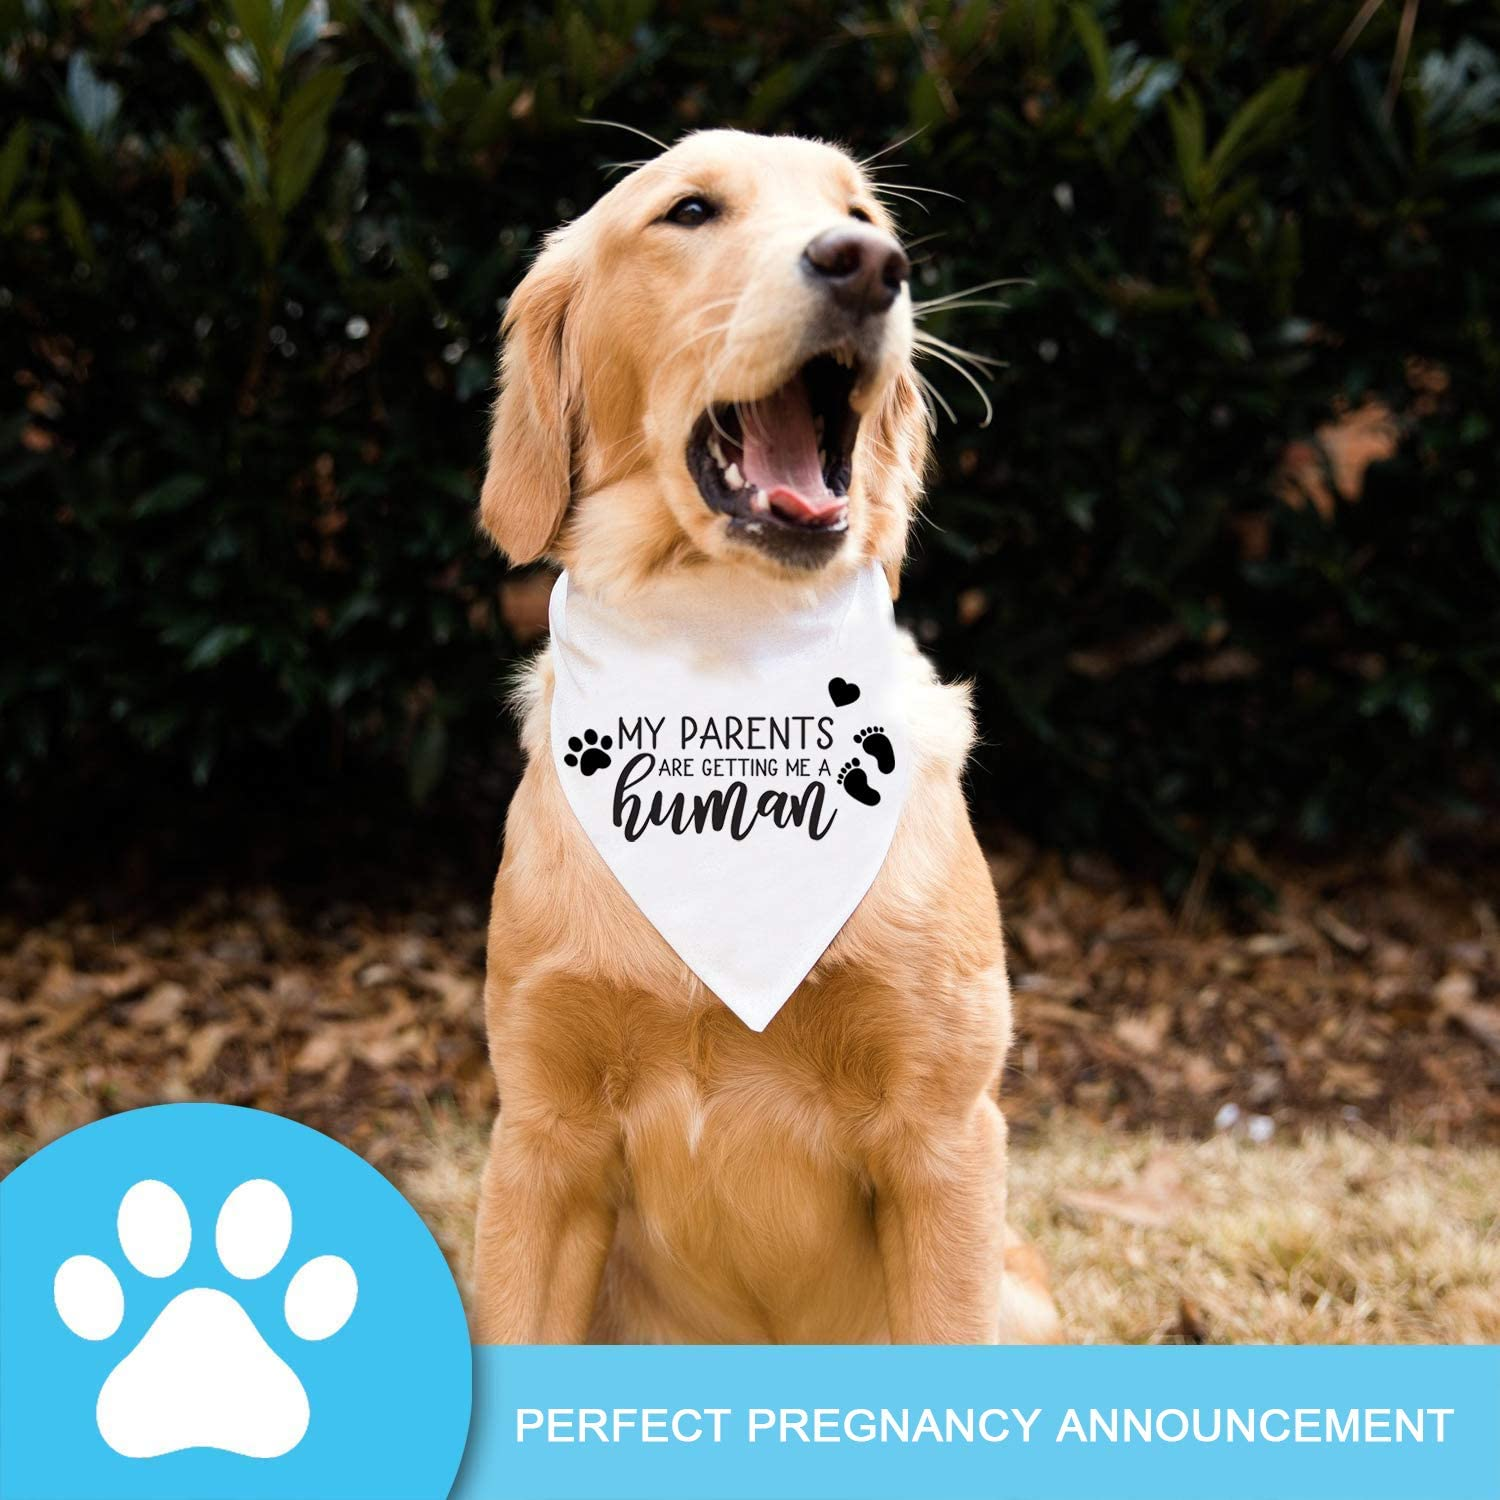 Hey Dad Mom/'s Pregnant Dog Bandana for Pregnancy Announcements or Photos